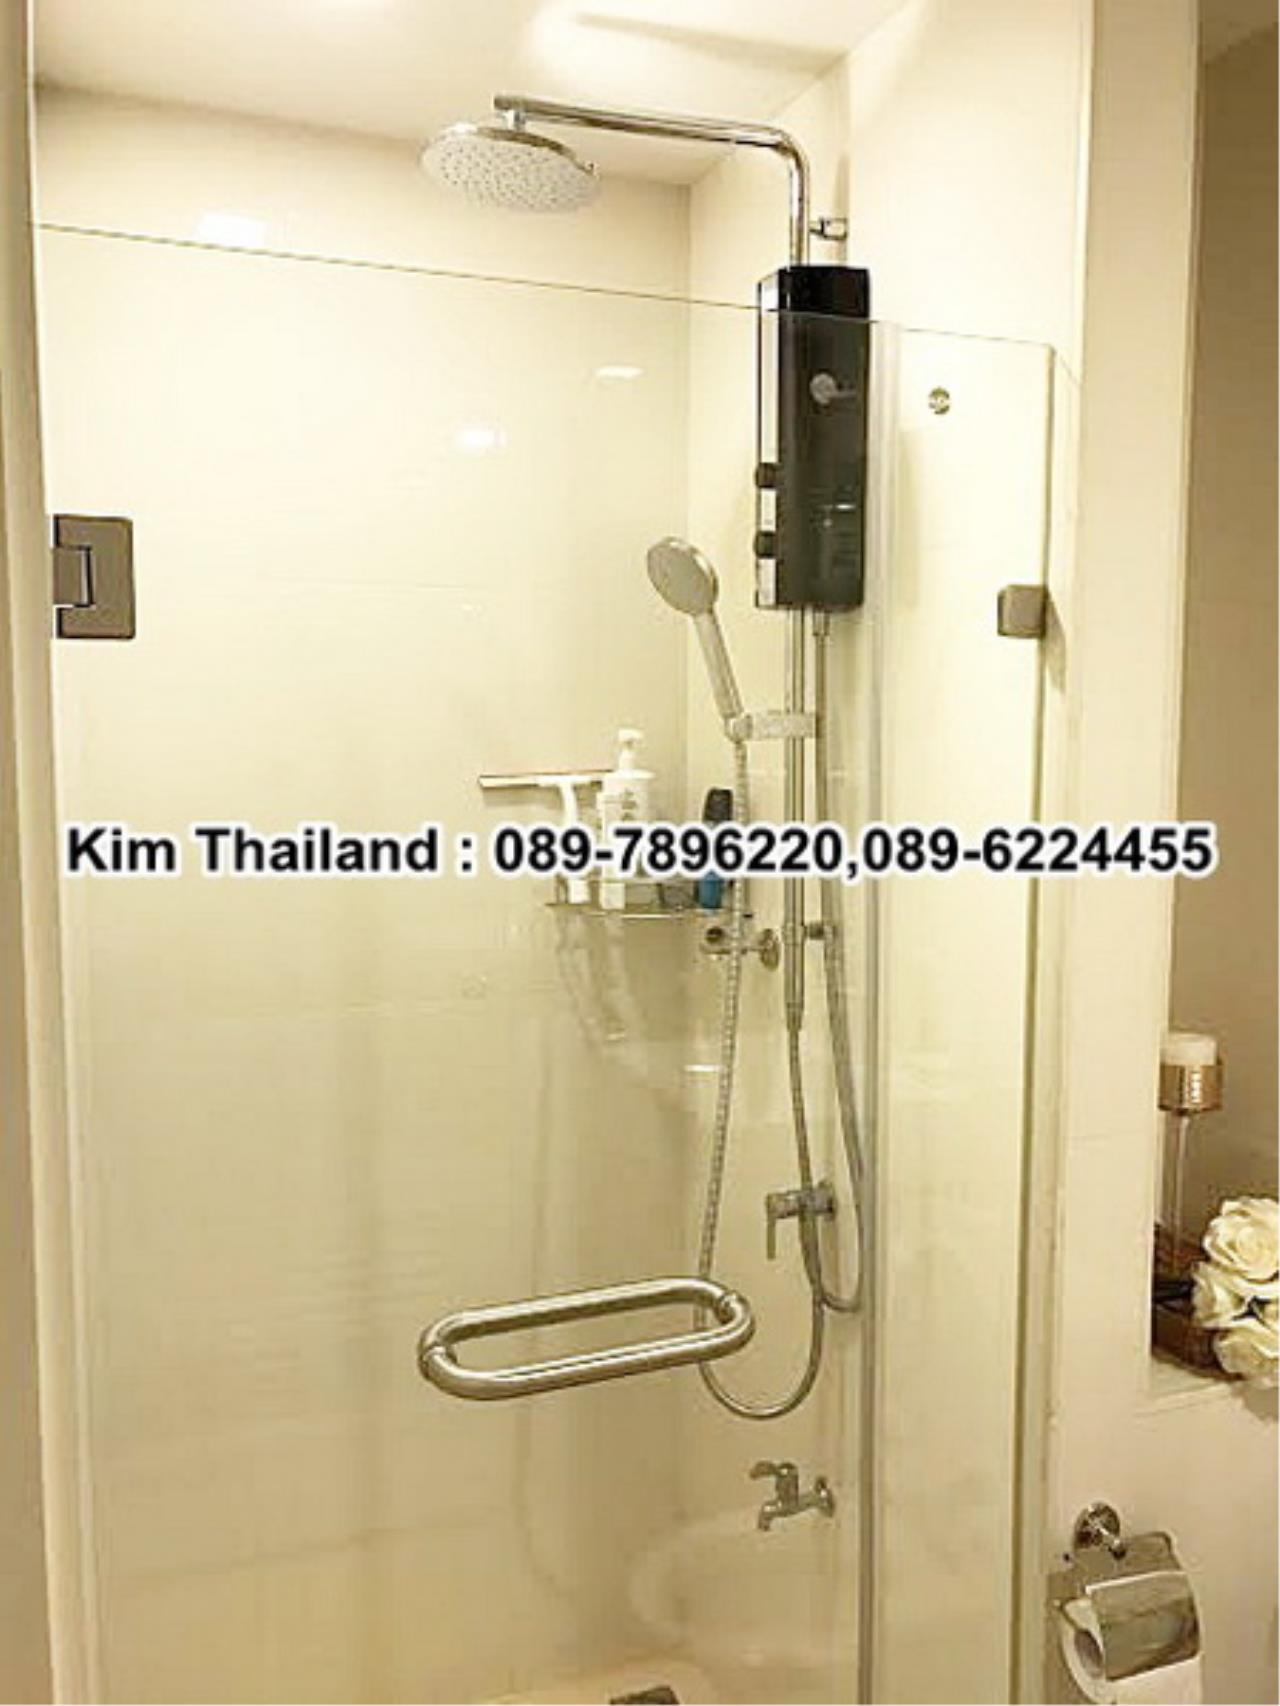 BKKcondorental Agency's For rent, Condo Metroluxe Rama 4., Area 28 sq.m. 1 bedroom. Rental 15,000 THB per month. 7